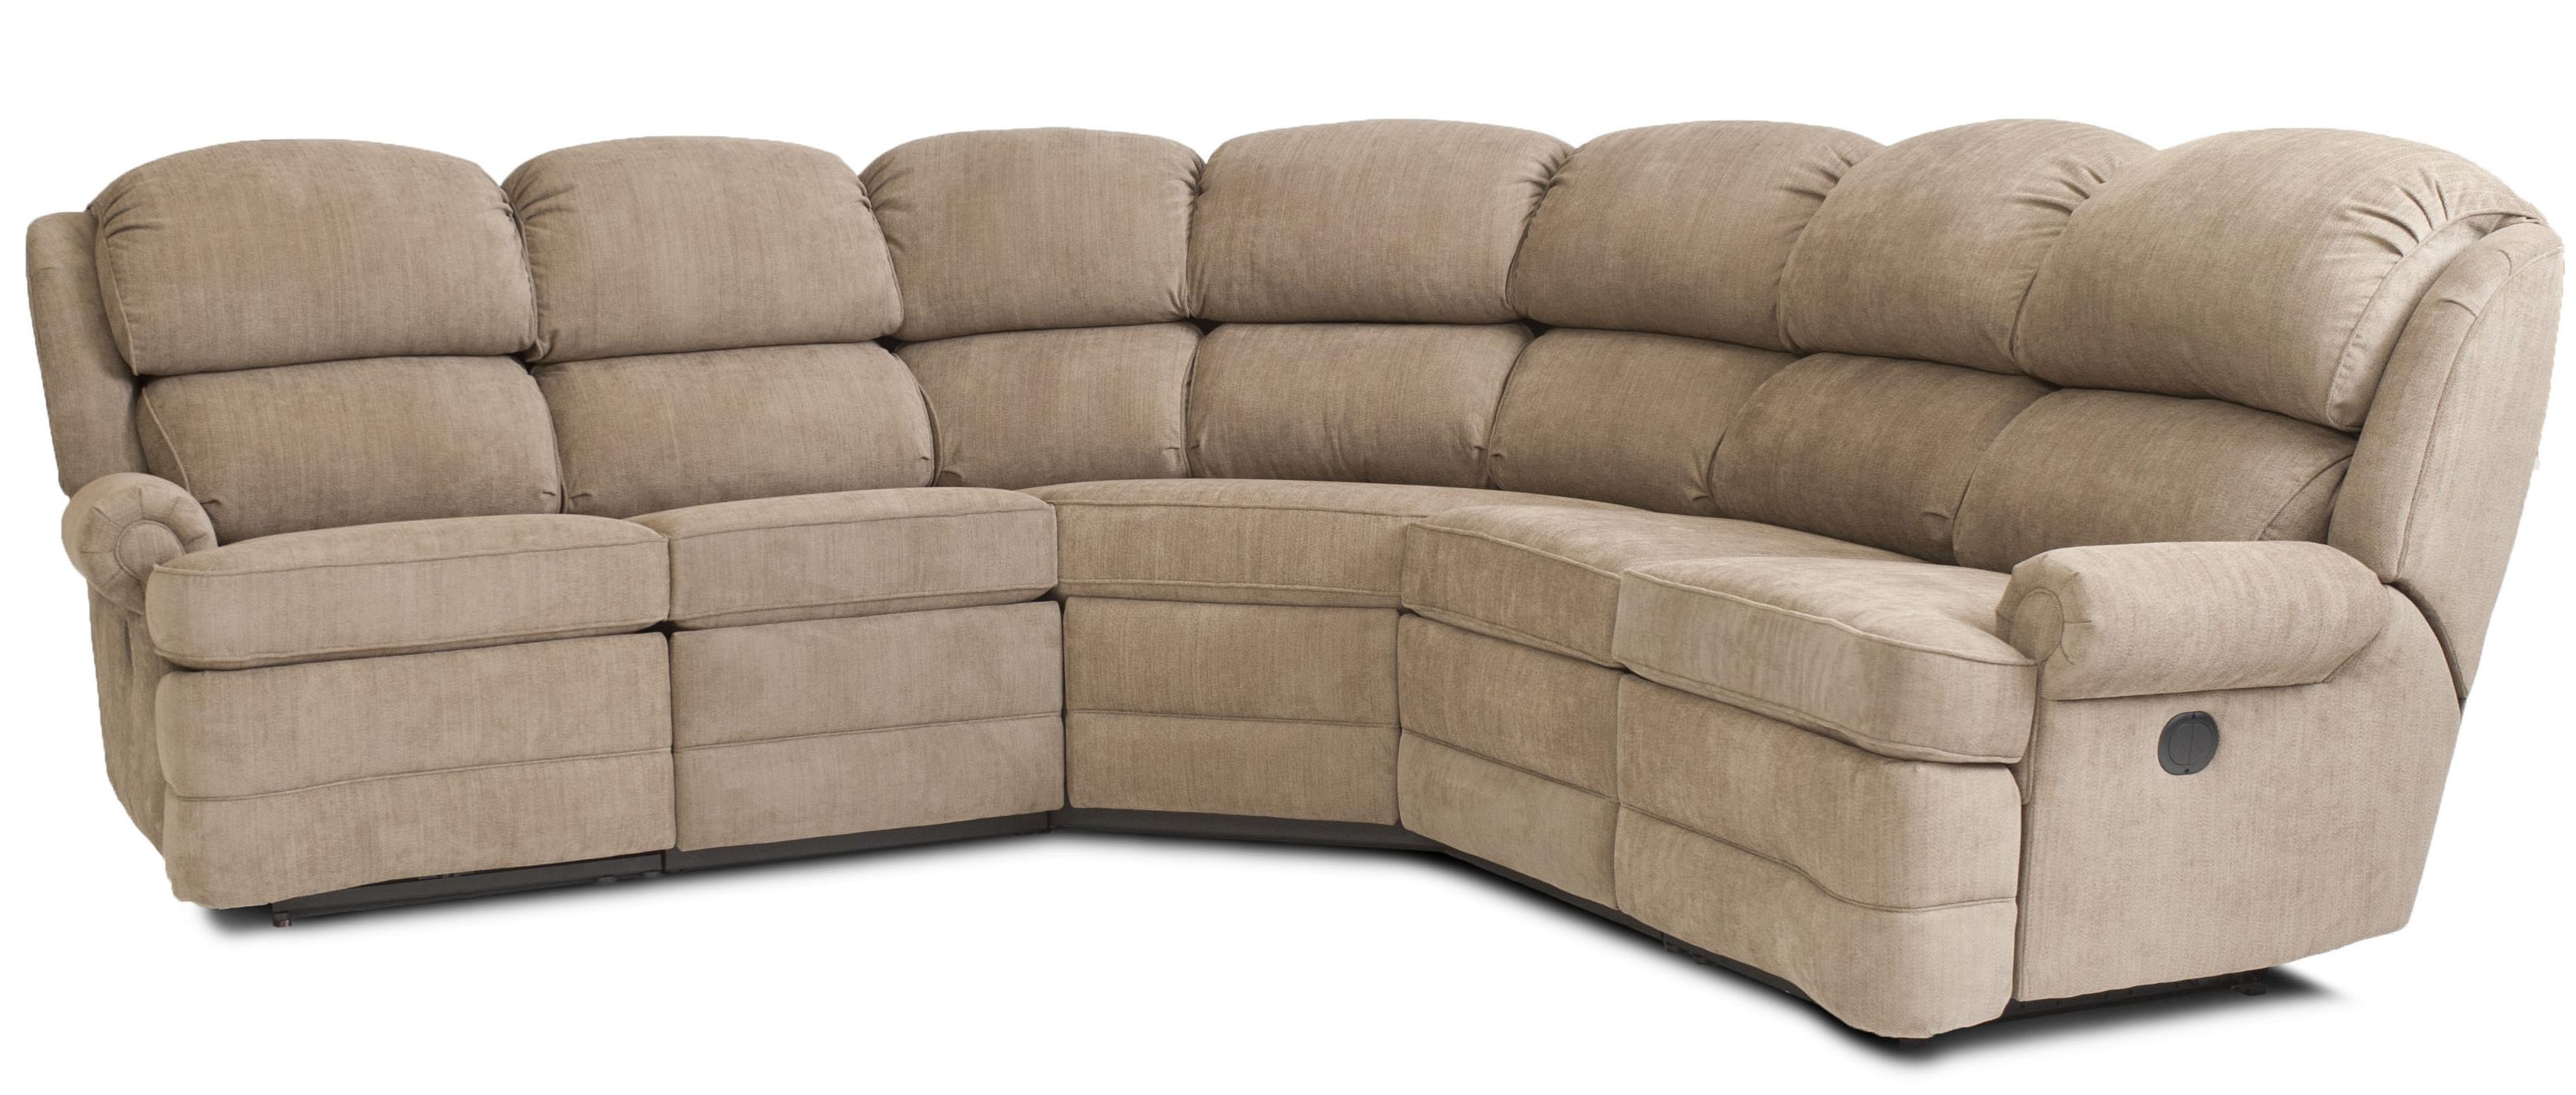 Transitional 5-Piece Reclining Sectional Sofa with Small Rolled Arms  sc 1 st  Wolf Furniture : individual sectional sofa pieces - Sectionals, Sofas & Couches